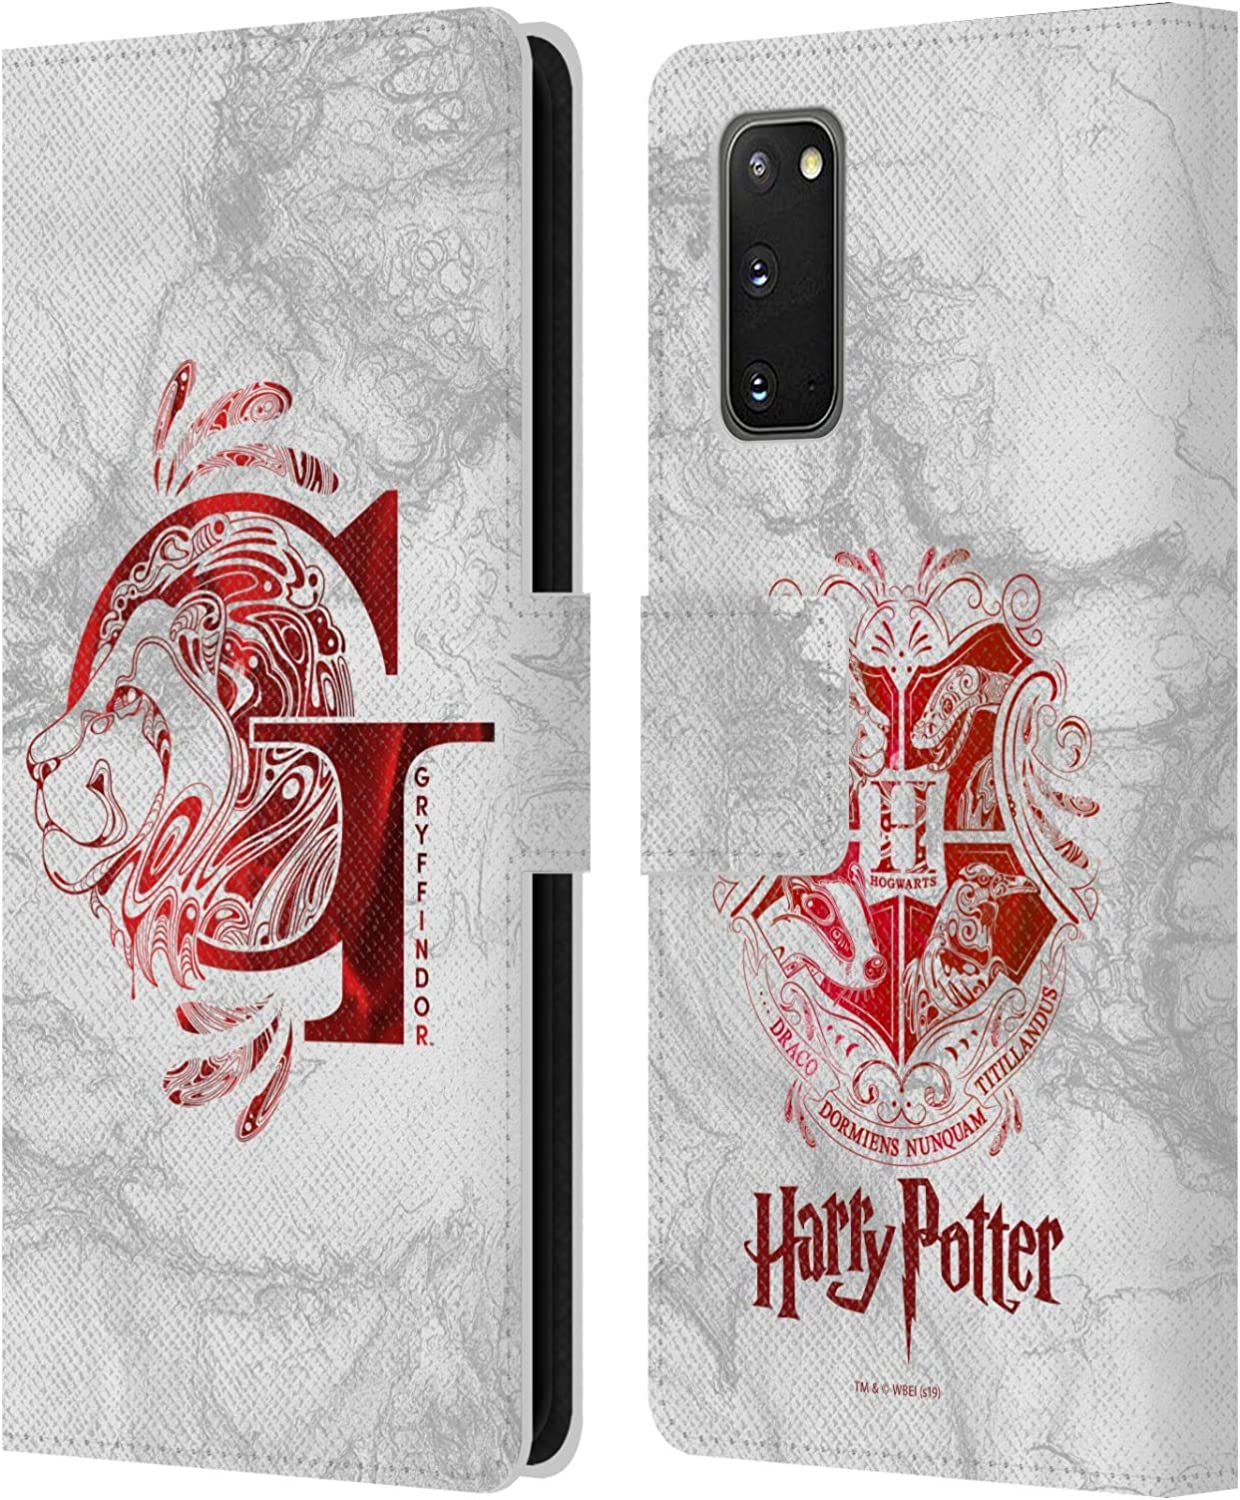 Head Case Designs Oficial Harry Potter Piedra Filosofal Deathly Hallows I Carcasa r/ígida Compatible con Apple Touch 6th Gen//Touch 7th Gen